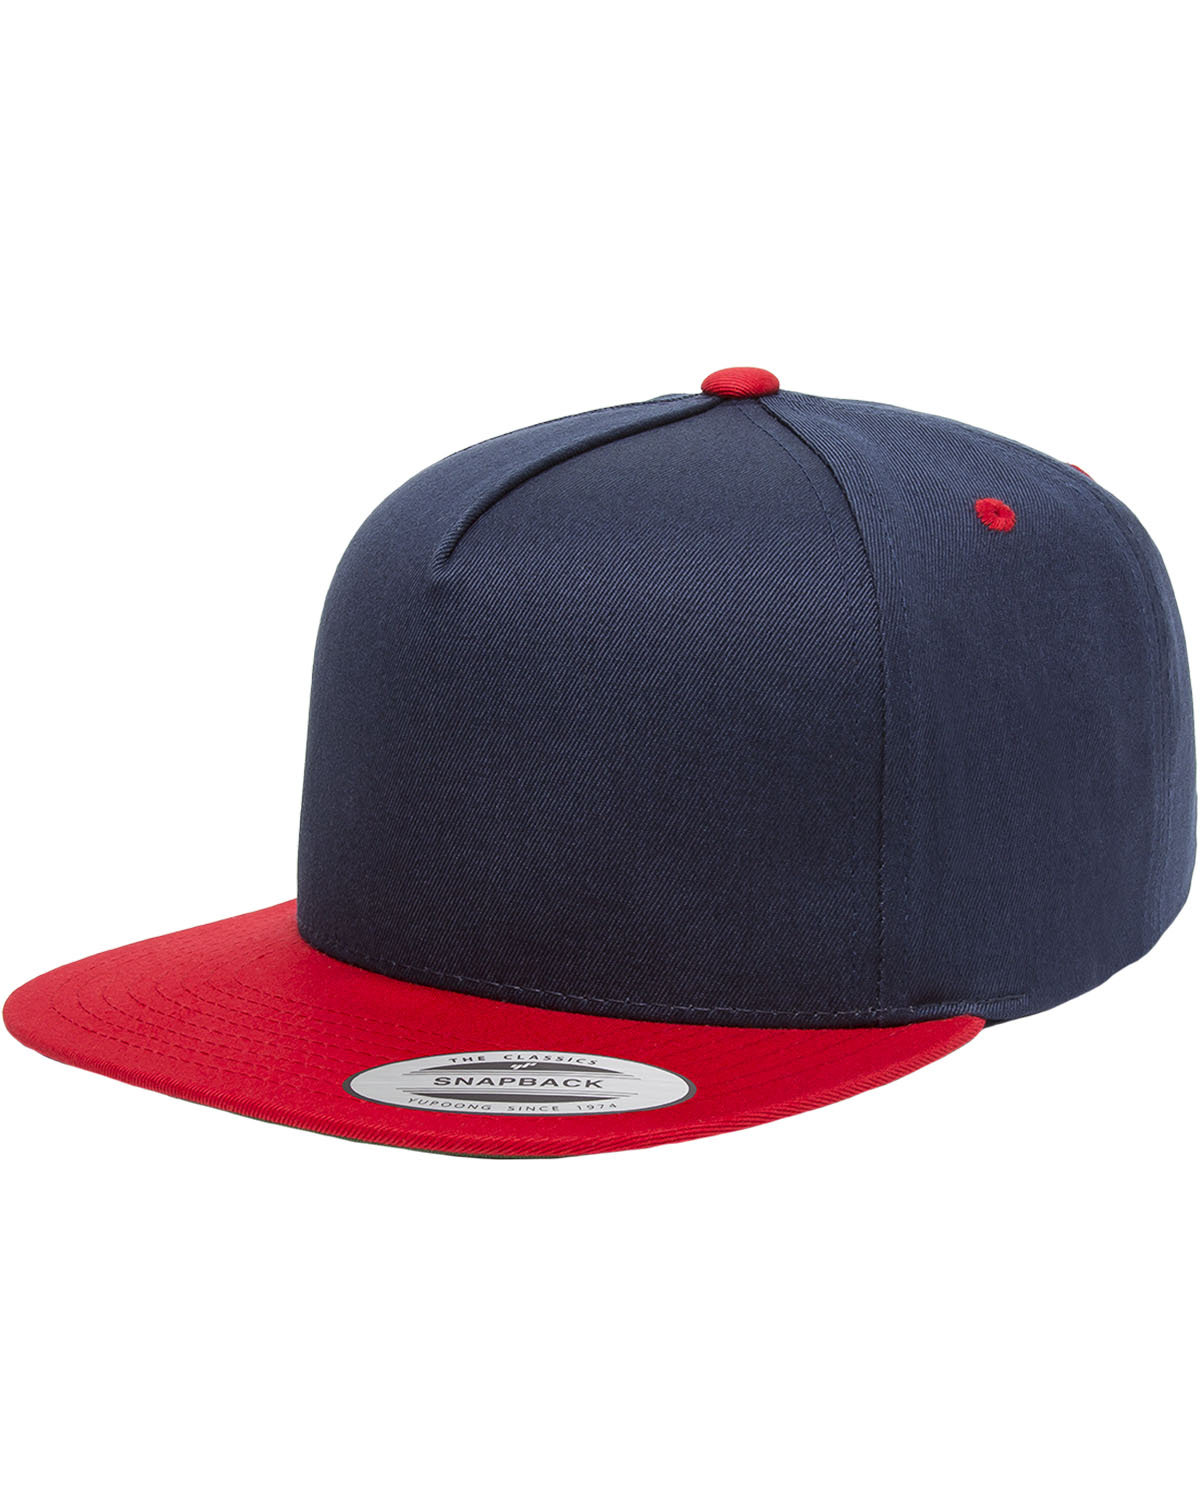 Yupoong Adult 5-Panel Cotton Twill Snapback Cap NAVY/ RED